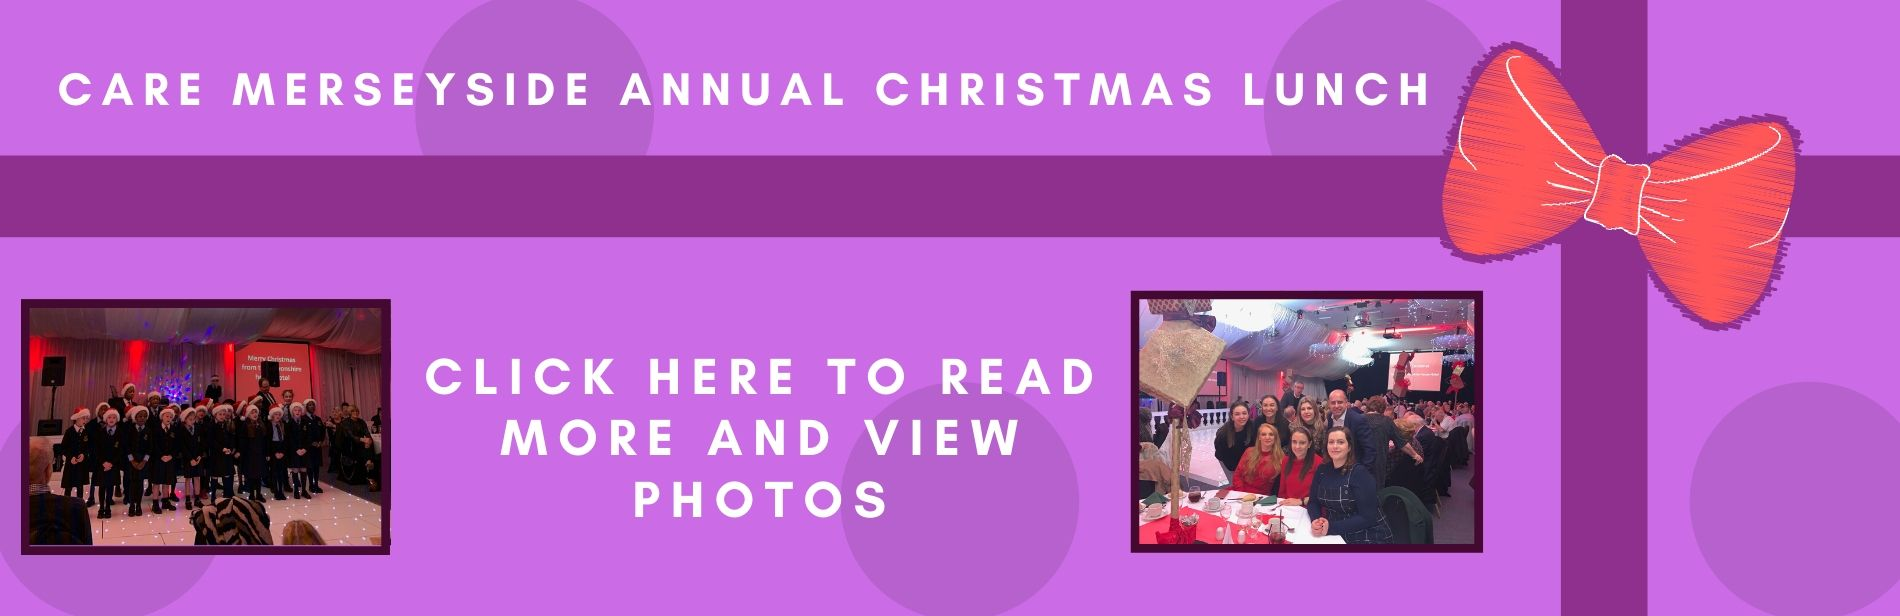 Care Merseyside Annual Christmas Lunch 2019